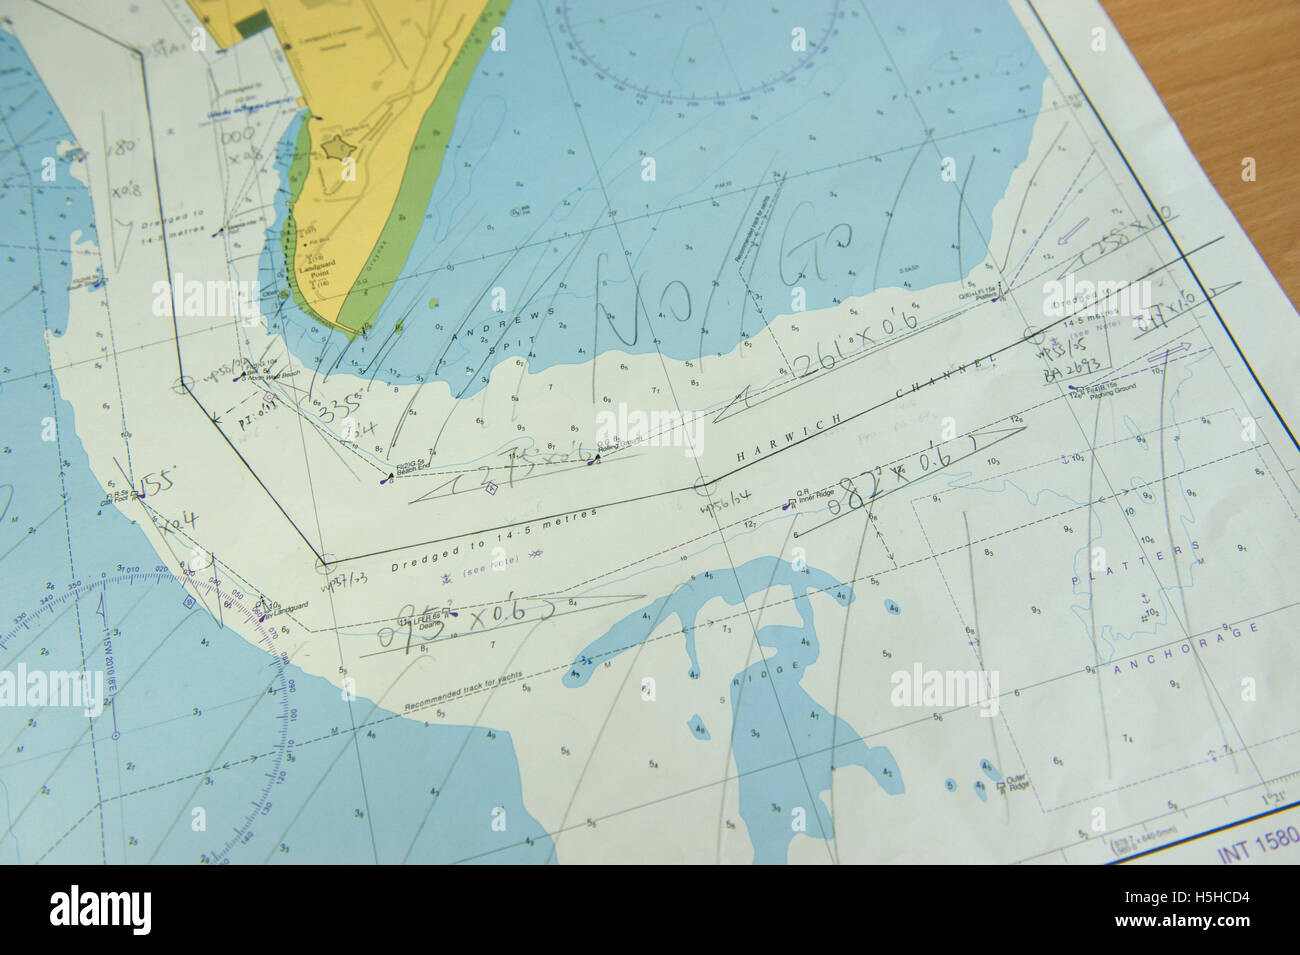 Admiralty navigation chart in ship's chartroom - Stock Image